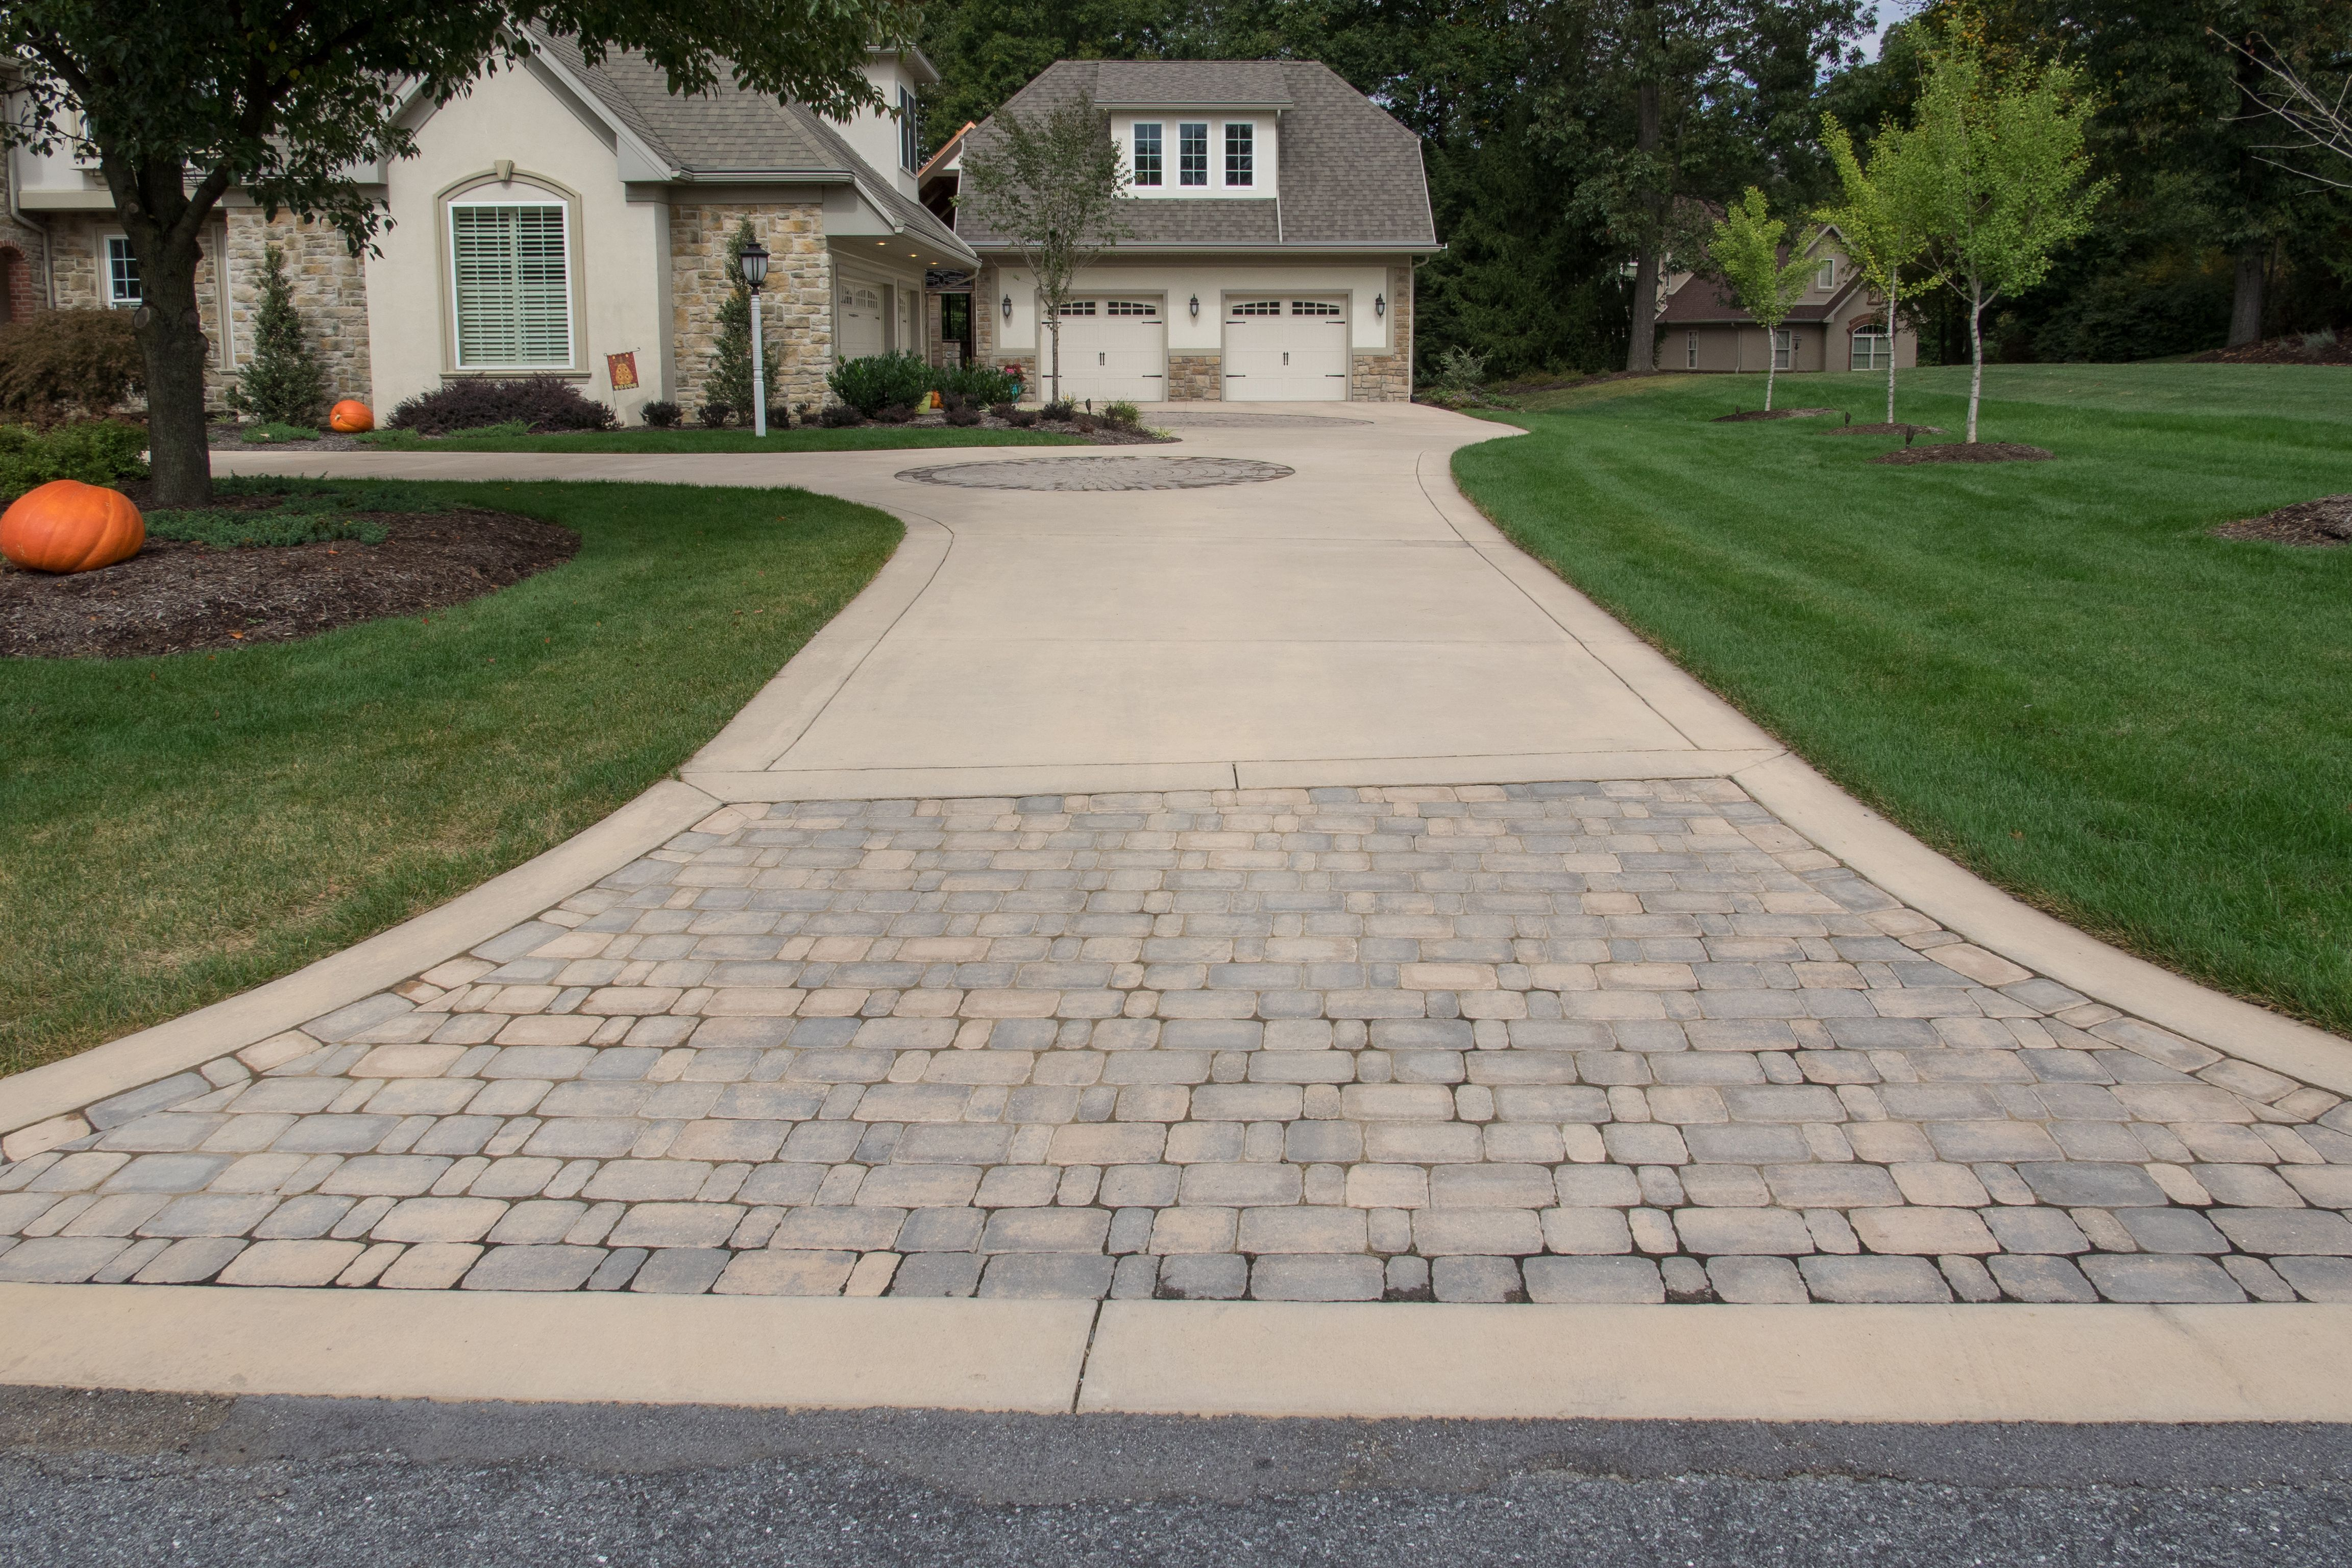 Image Result For Colored Concrete Driveway Concrete Driveways Driveway Apron Driveway